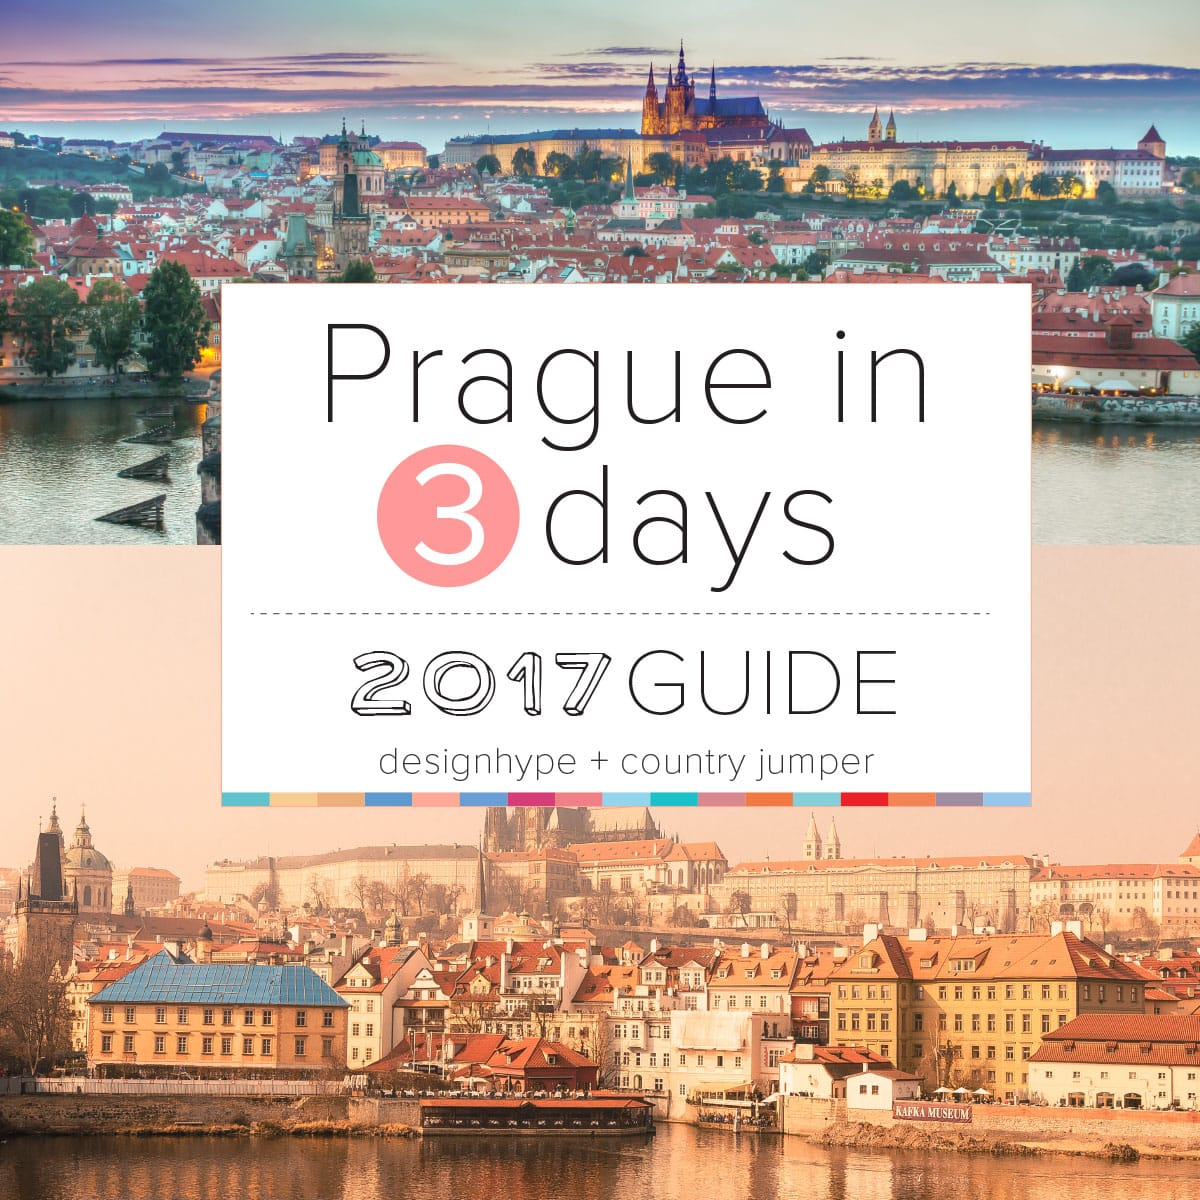 Prague in 3 Days 2017 Travel Guide by Country Jumper blog for Designhype